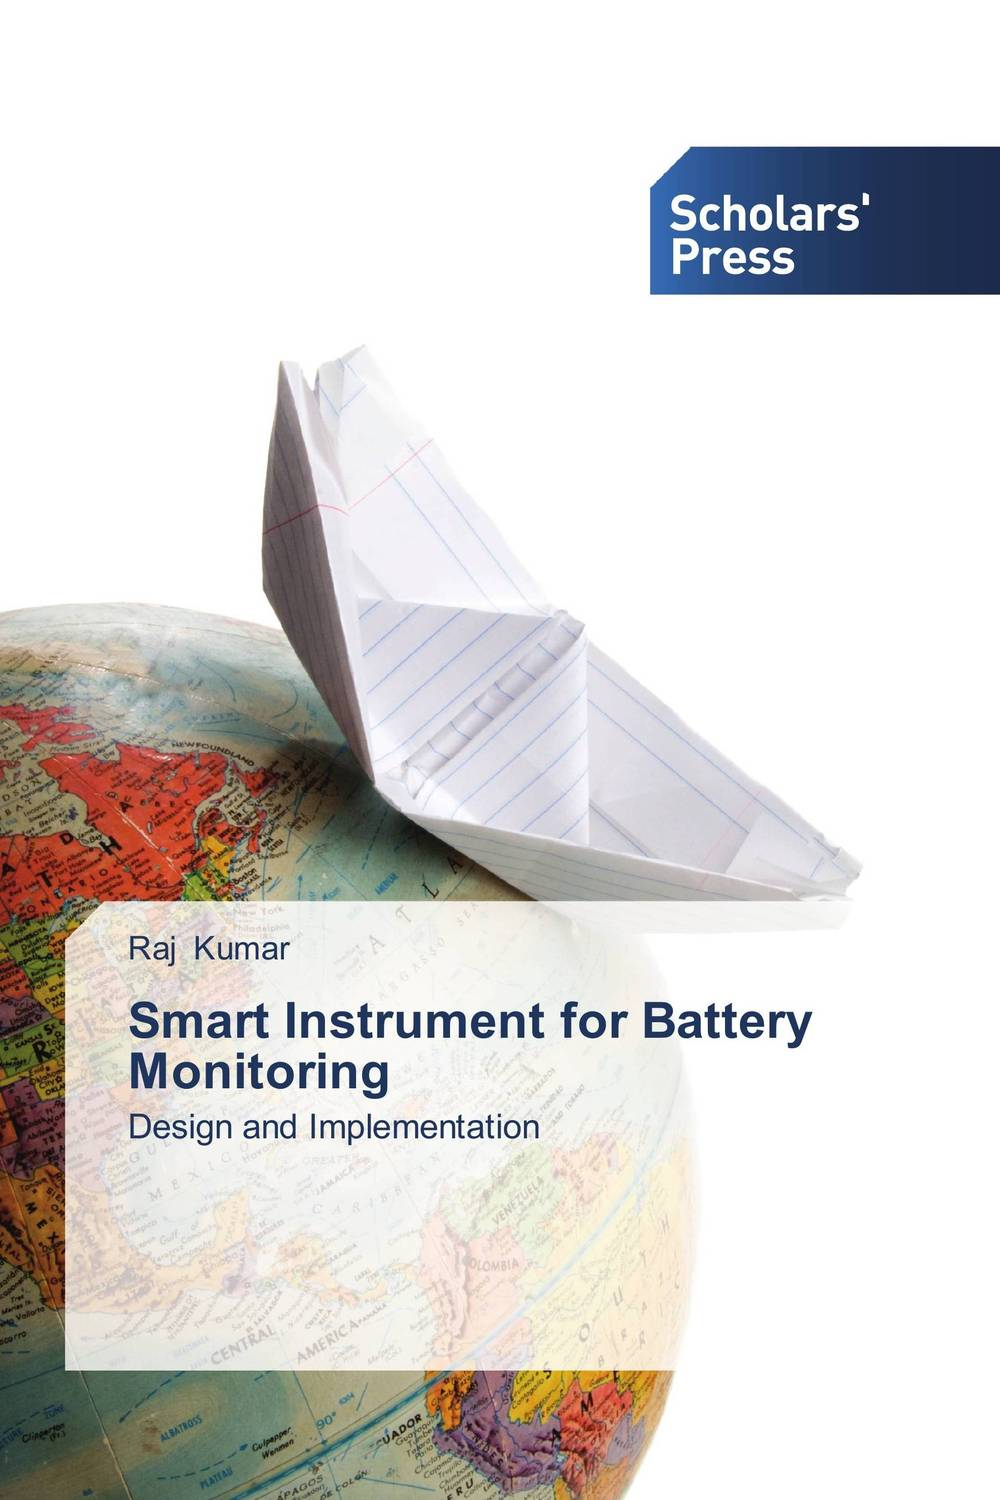 Smart Instrument for Battery Monitoring